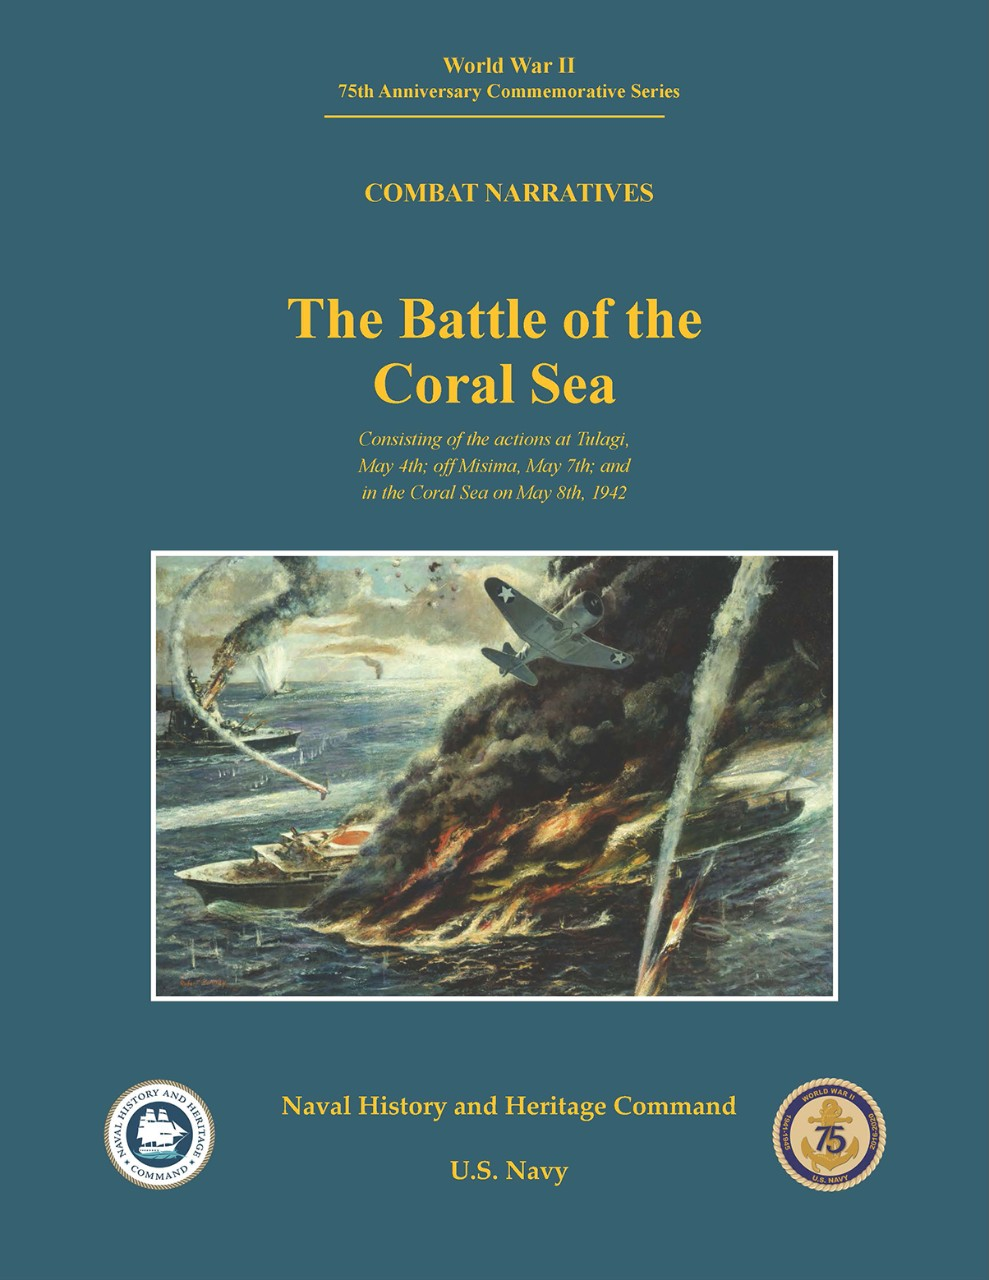 Publication cover image, World War II 75th Anniversary Commemorative Series Combat Narratives: Battle of the Coral Sea